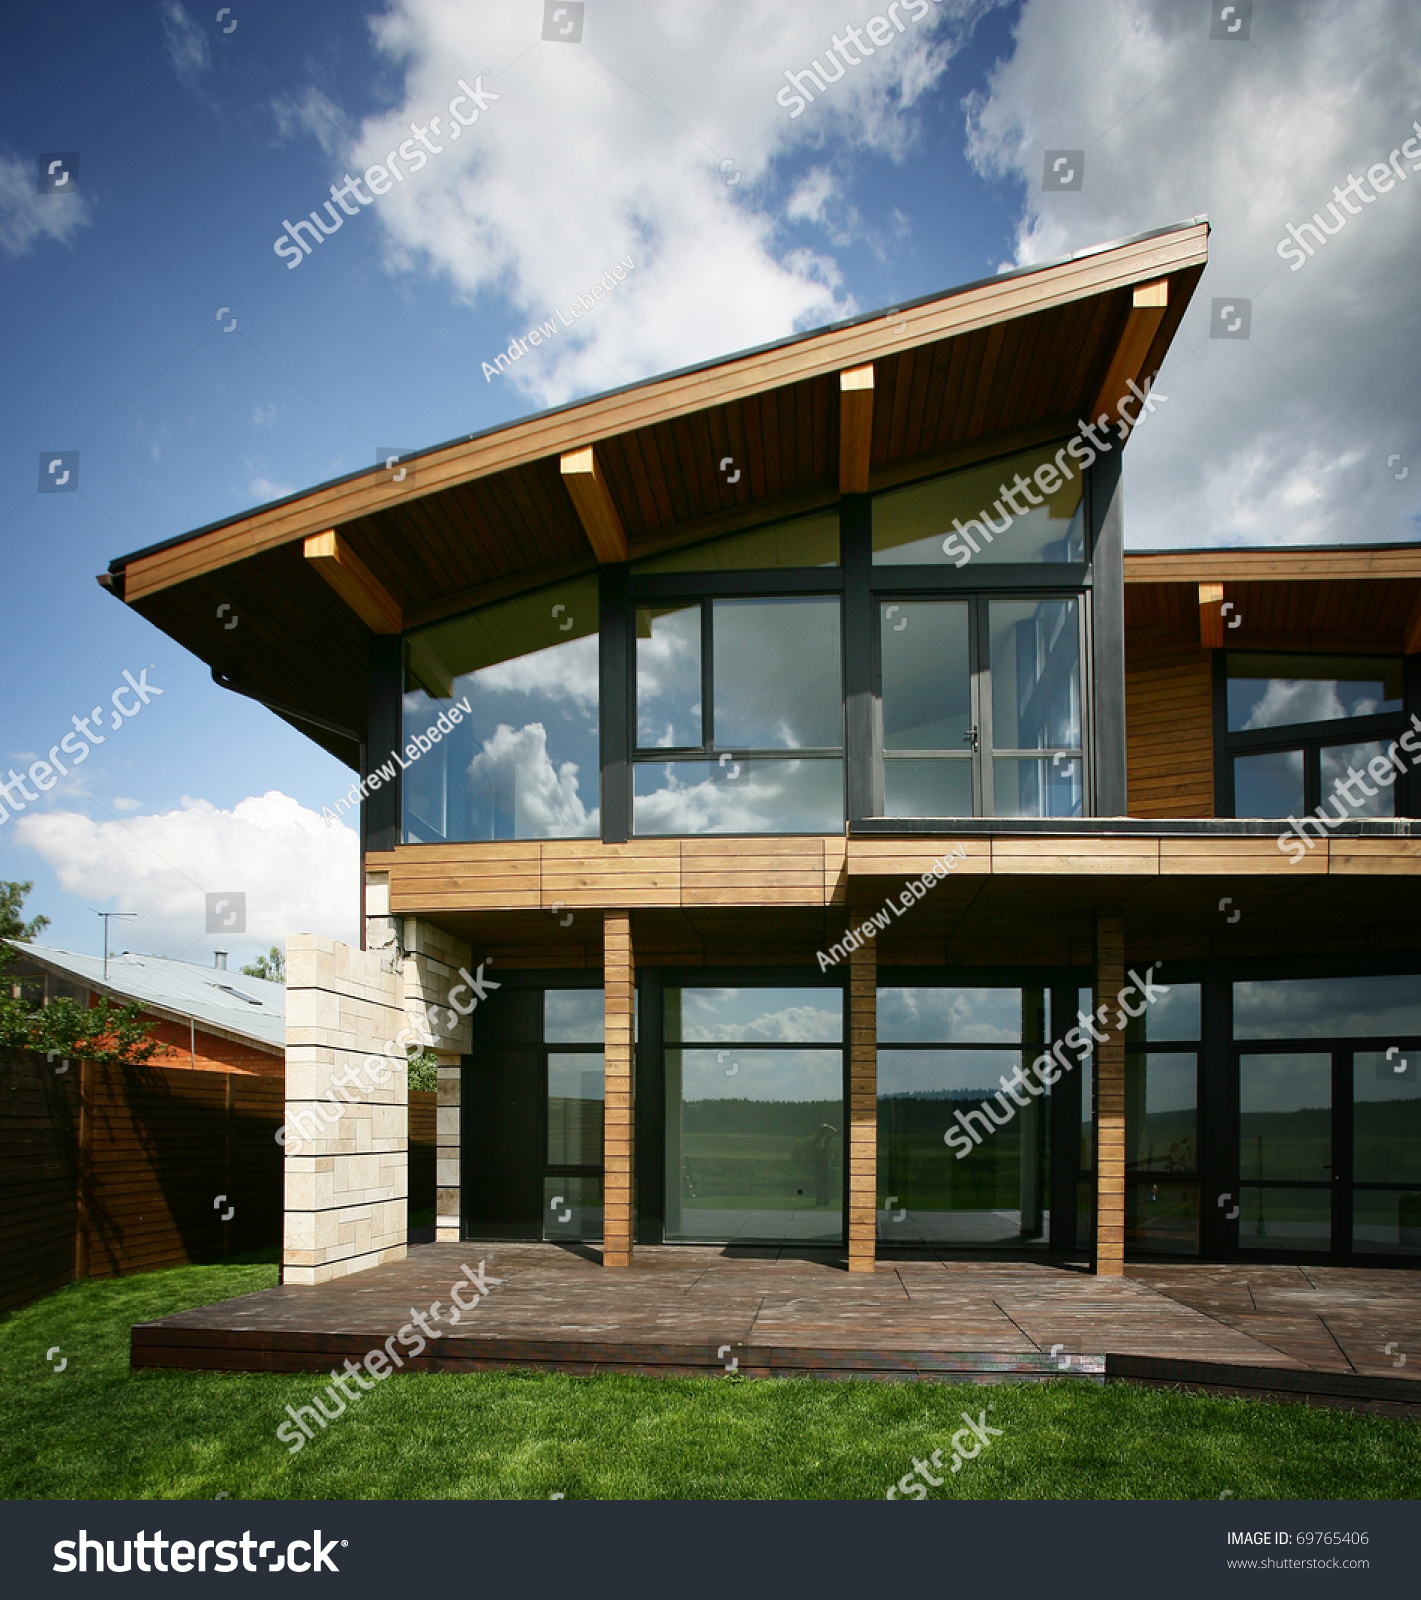 Home Design Ideas Architecture: Stylish Design House Big Glass Windows Stock Photo